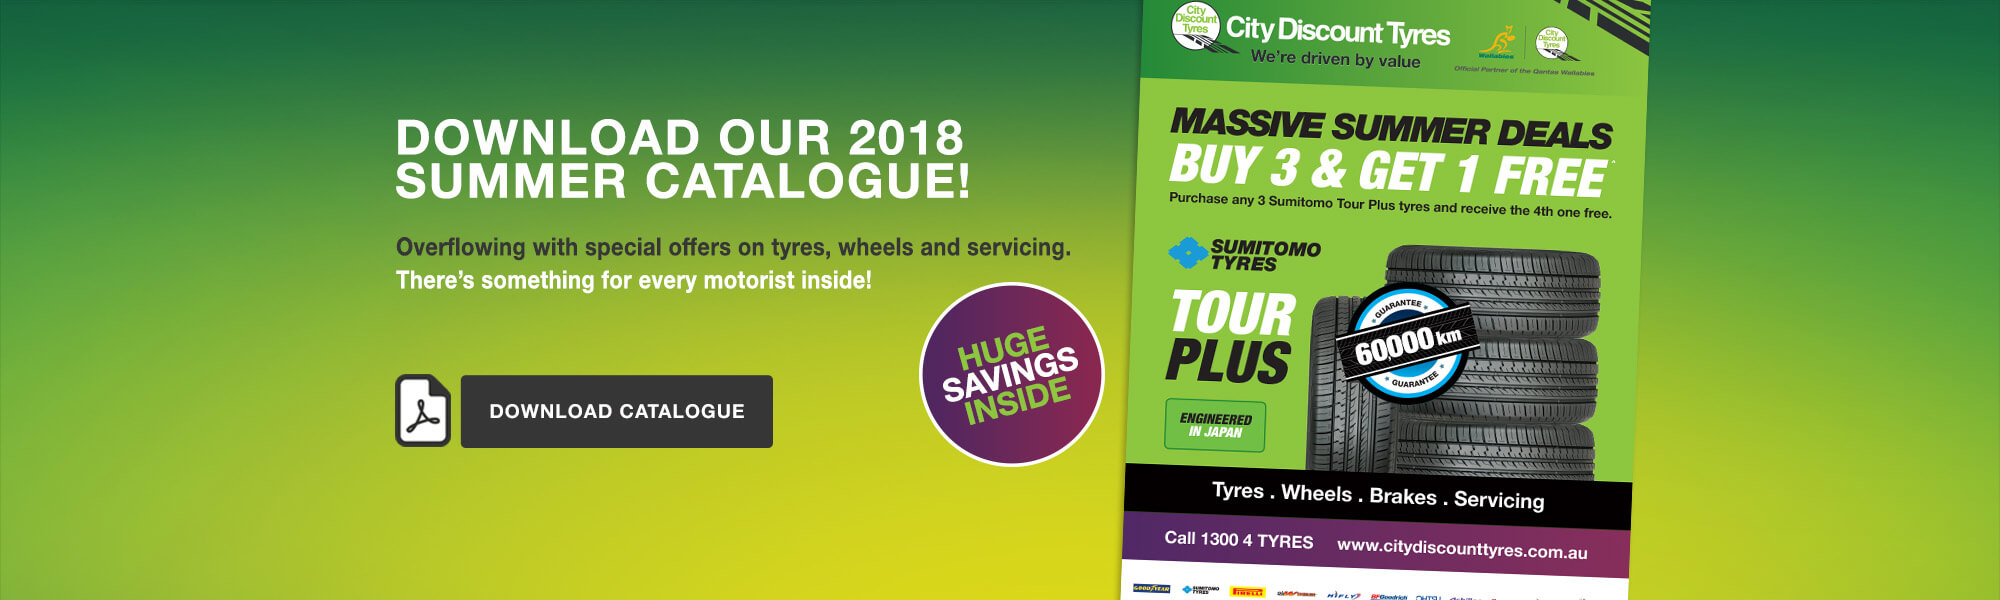 City Discount Tyres catalogue